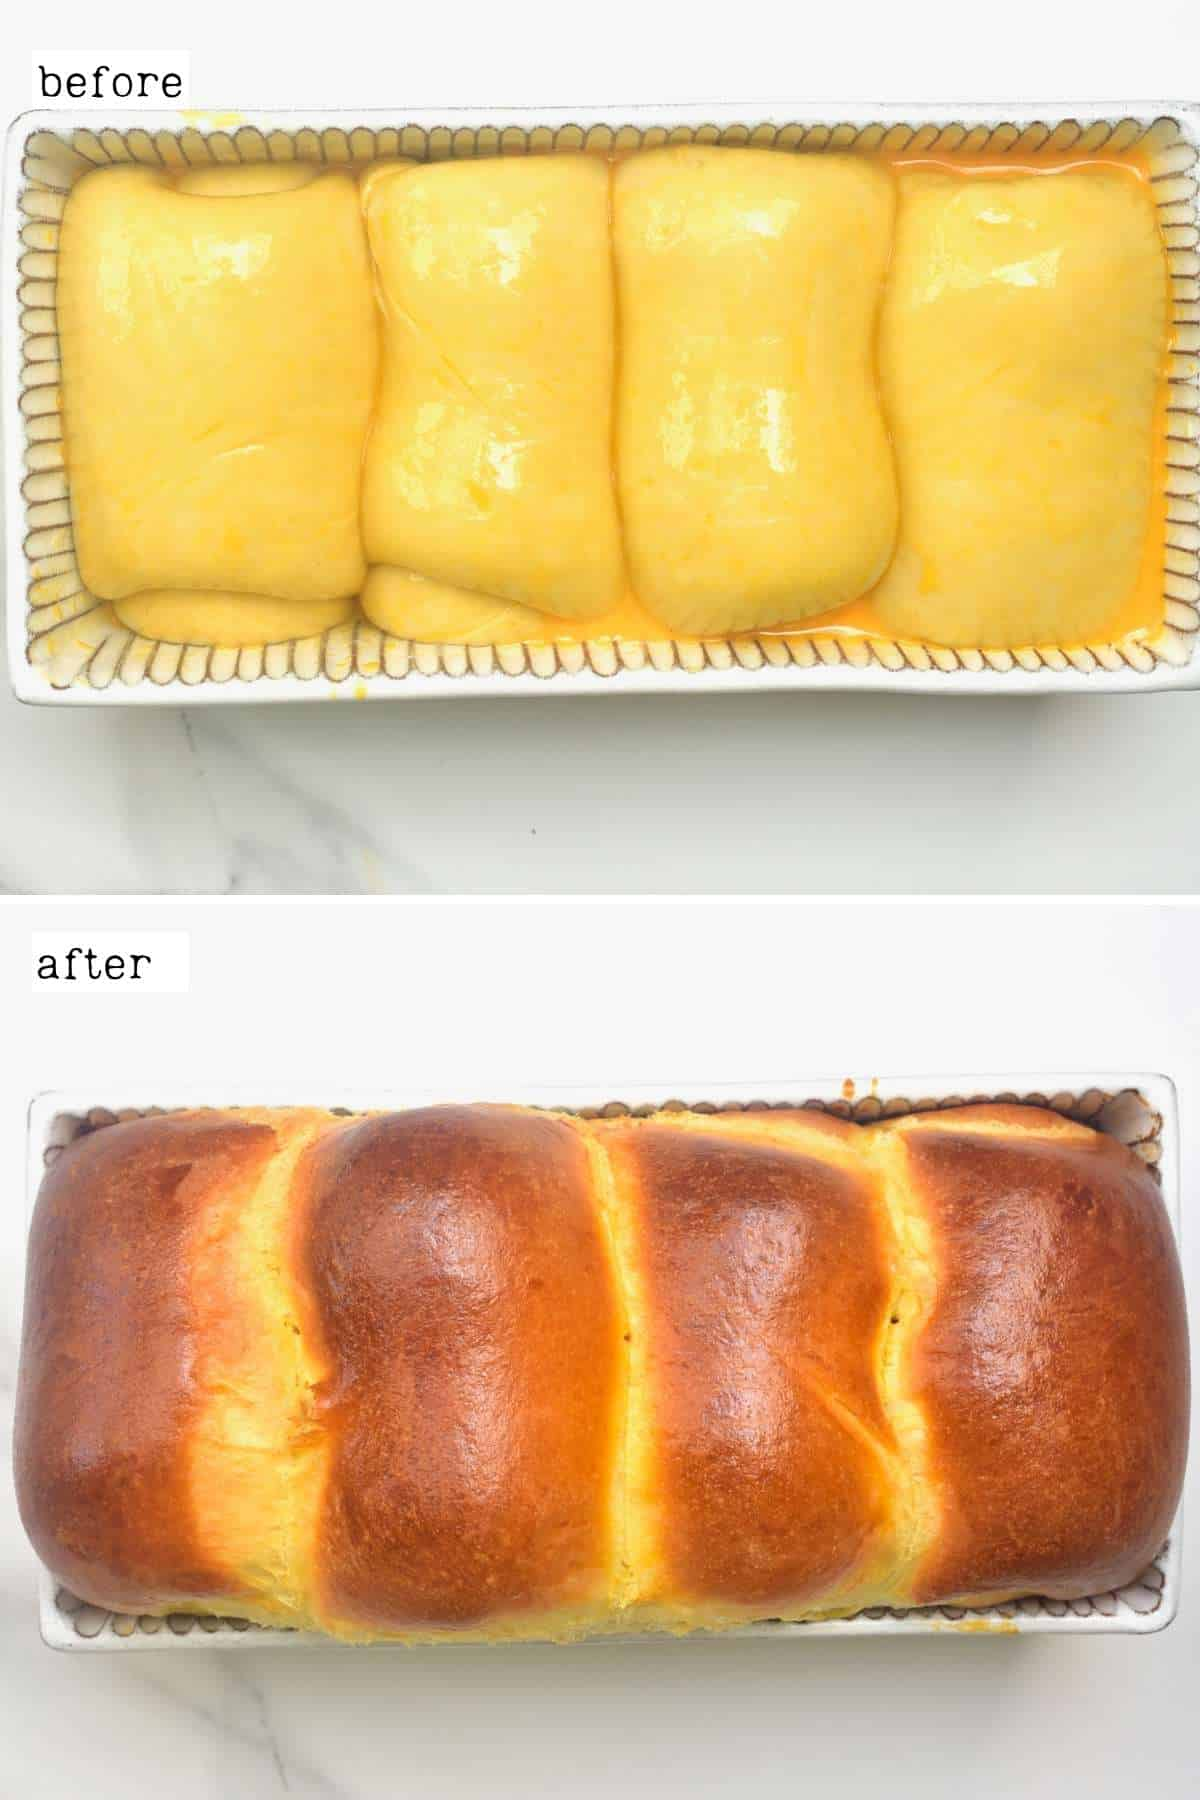 Before and after baking a brioche